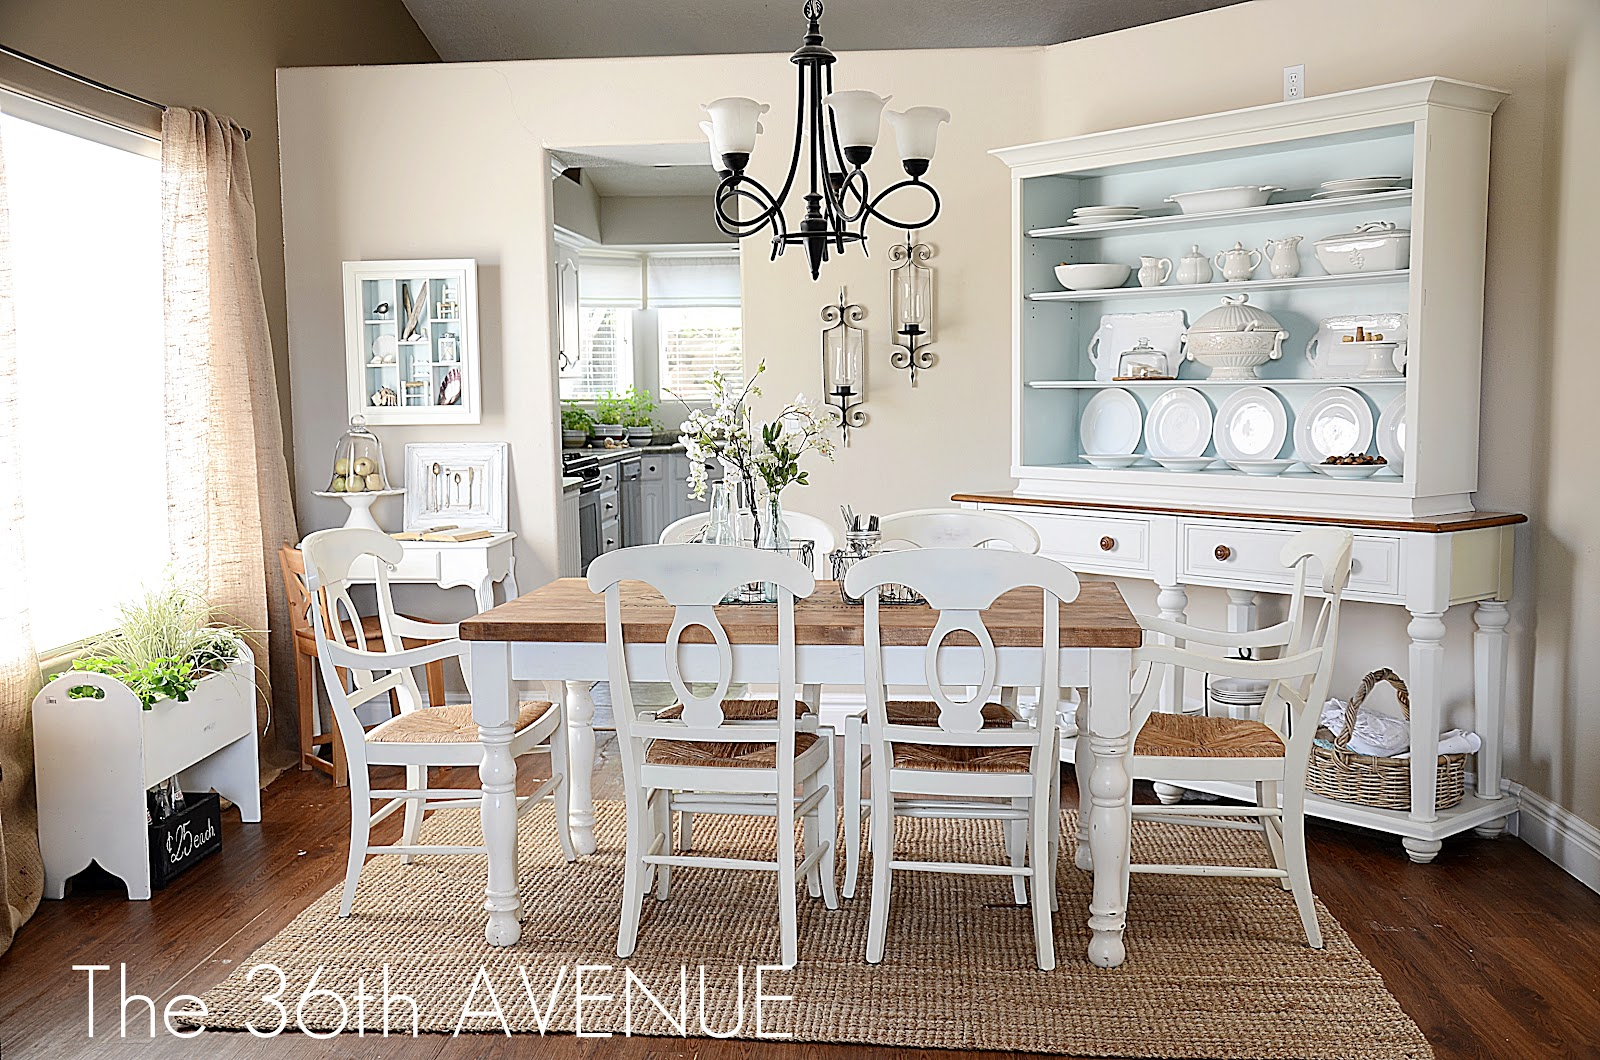 Modern Farmhouse Wall Decor Dining Room Dining Room Reveal And Design Tips The 36th Avenue